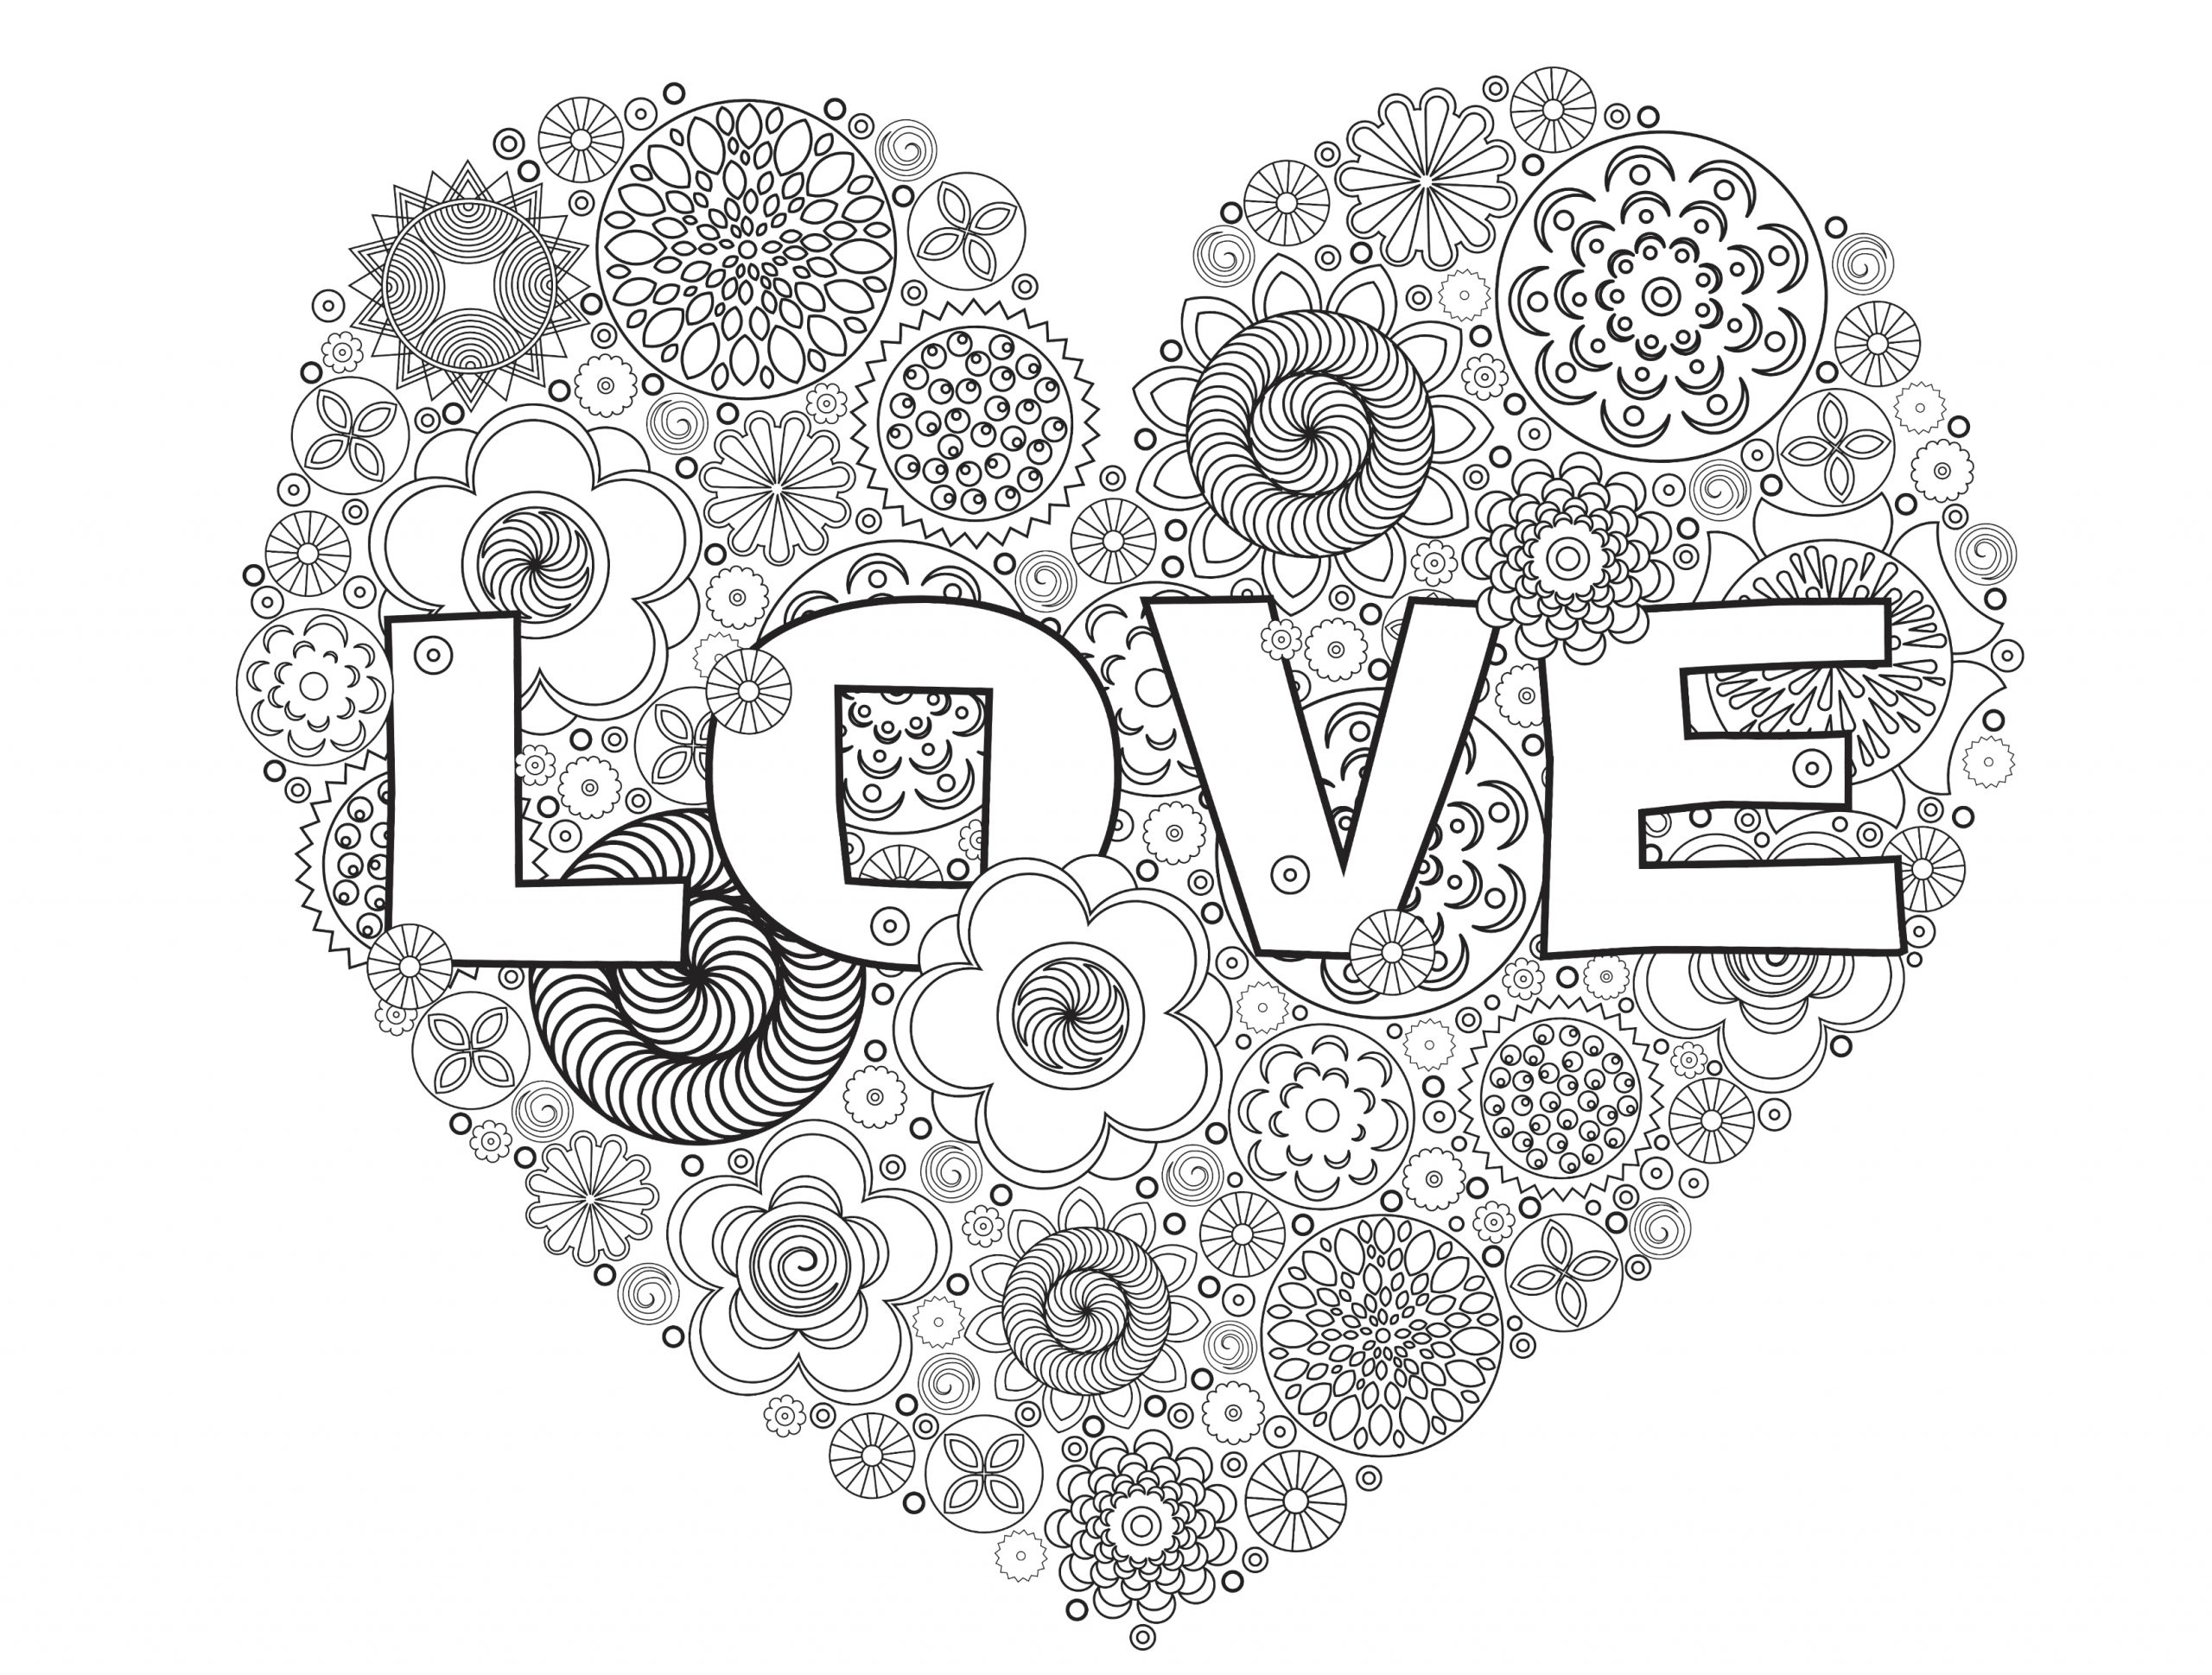 Free Printable Love Coloring Pages for Adults Valentines Day Coloring Pages for Adults Best Coloring